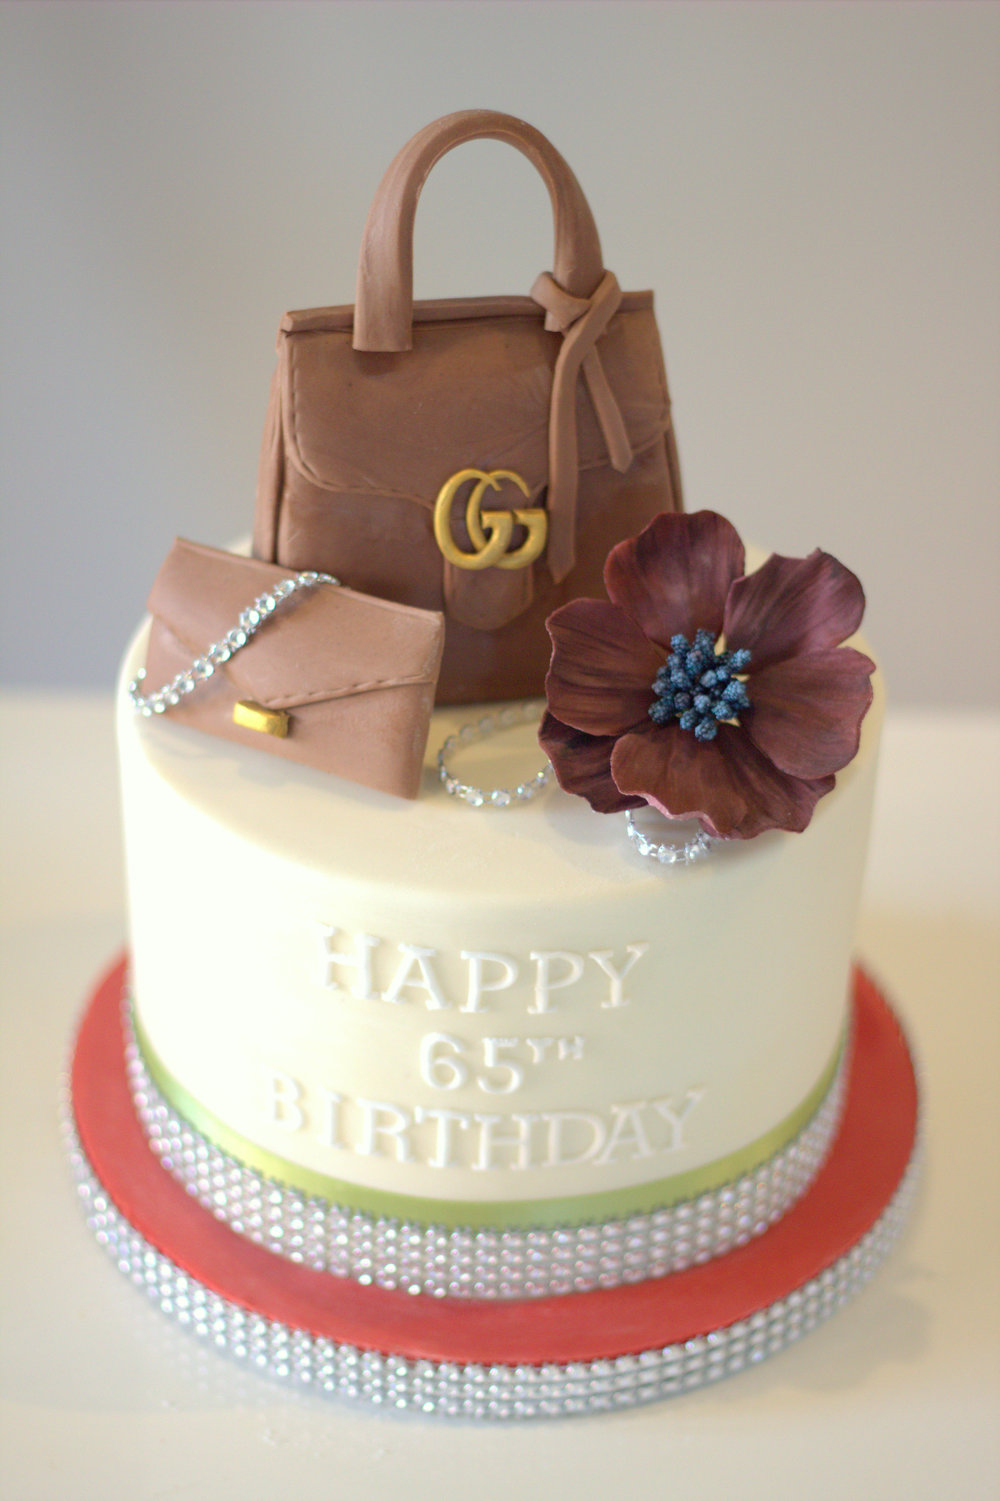 Gucci Birthday Cake Jaw Dropping Celebration Cakes Surrey